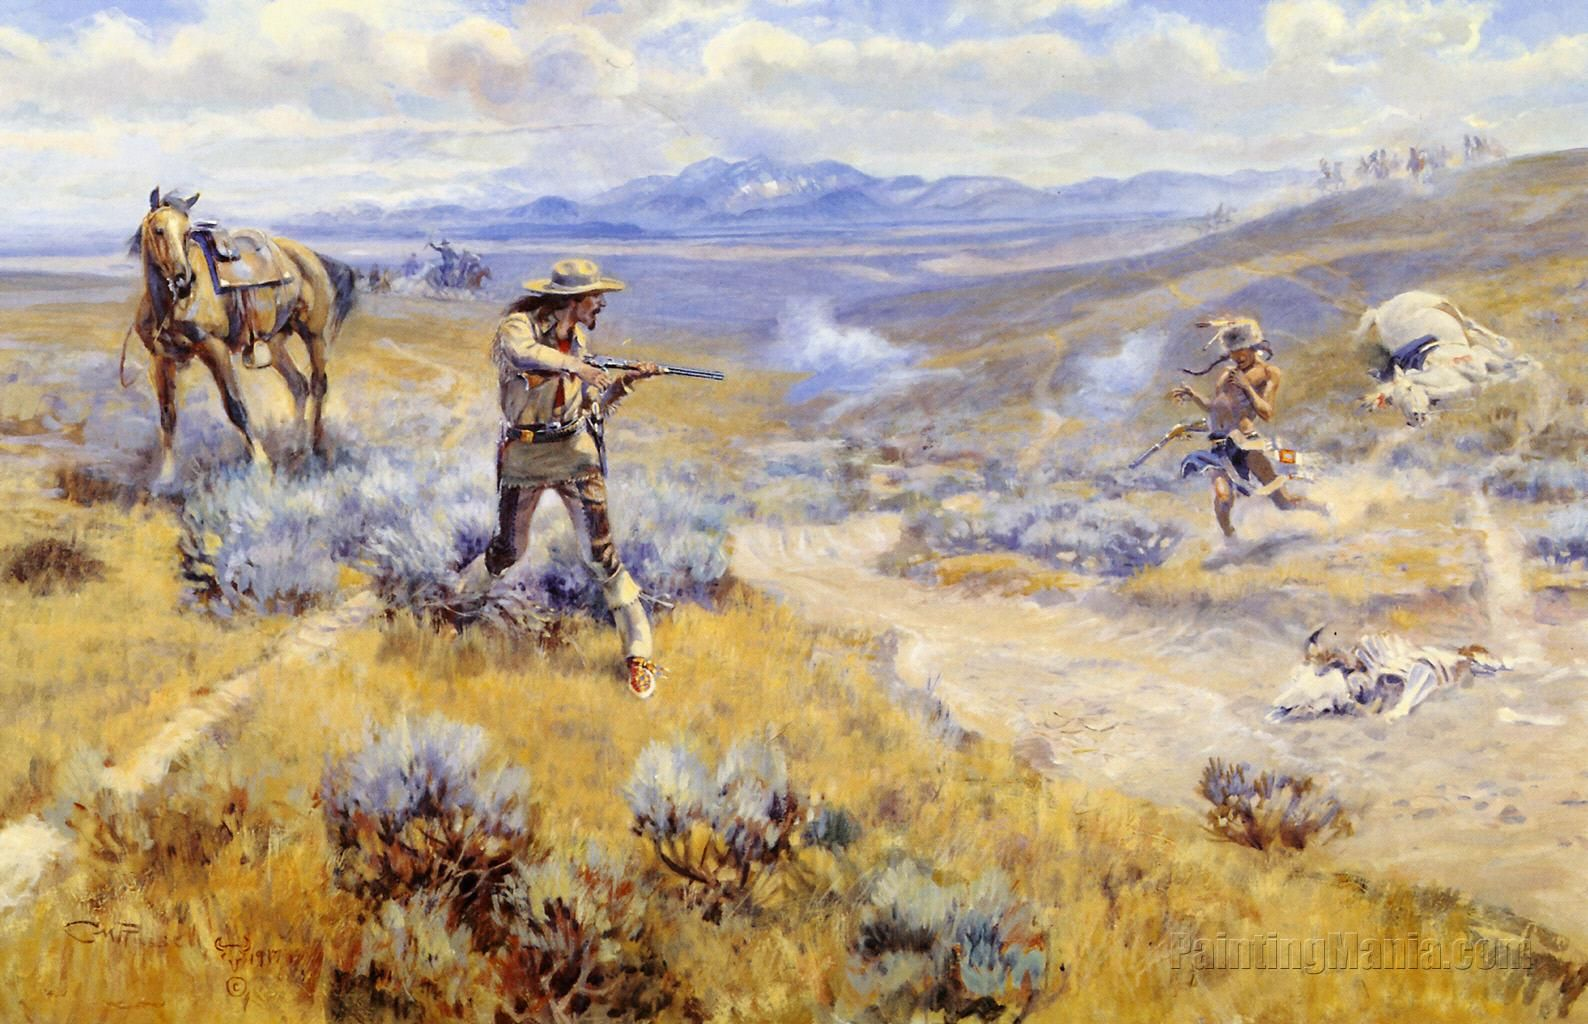 Charles M. Russell, painter | Inspirations